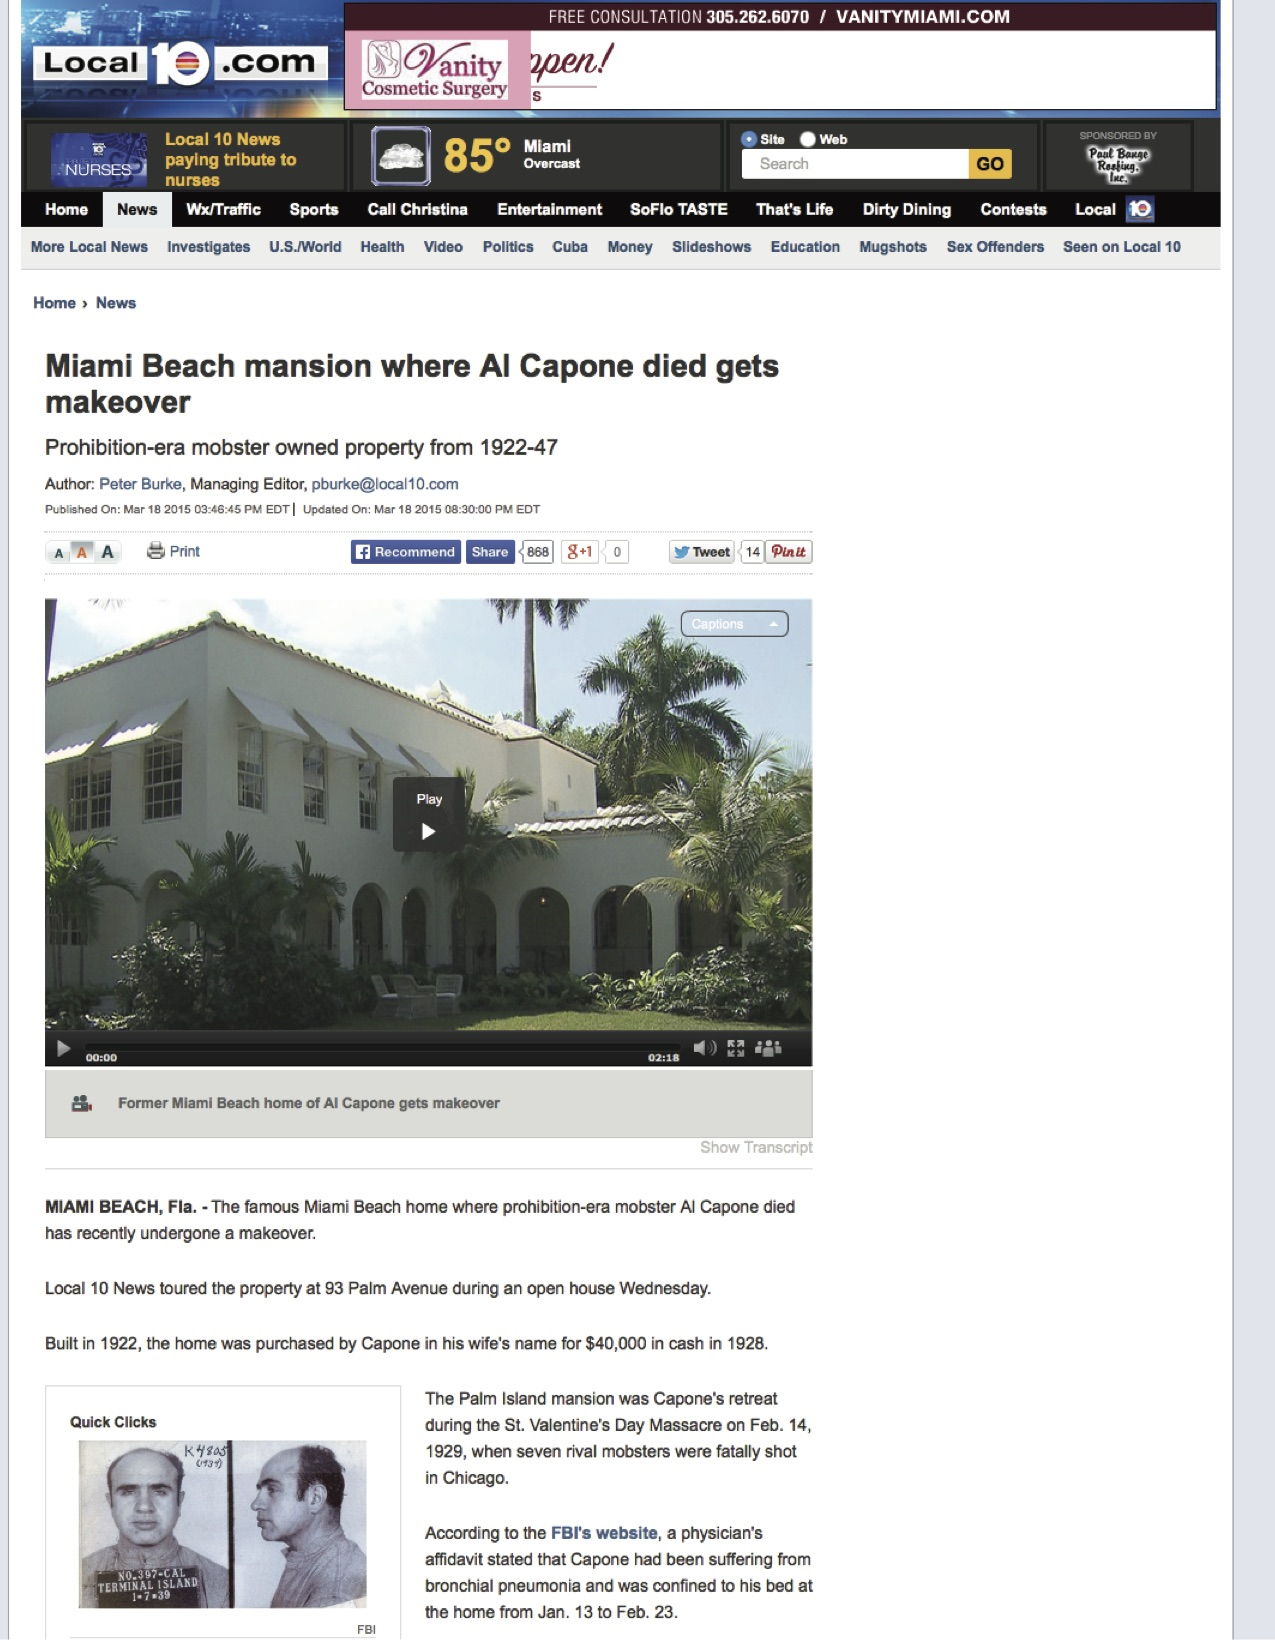 """<p><strong>Local 10 News</strong><a href=""""http://www.local10.com/news/miami-beach-mansion-where-al-capone-died-gets-makeover/31869208"""" target=""""_blank"""">Watch Video →</a></p>"""